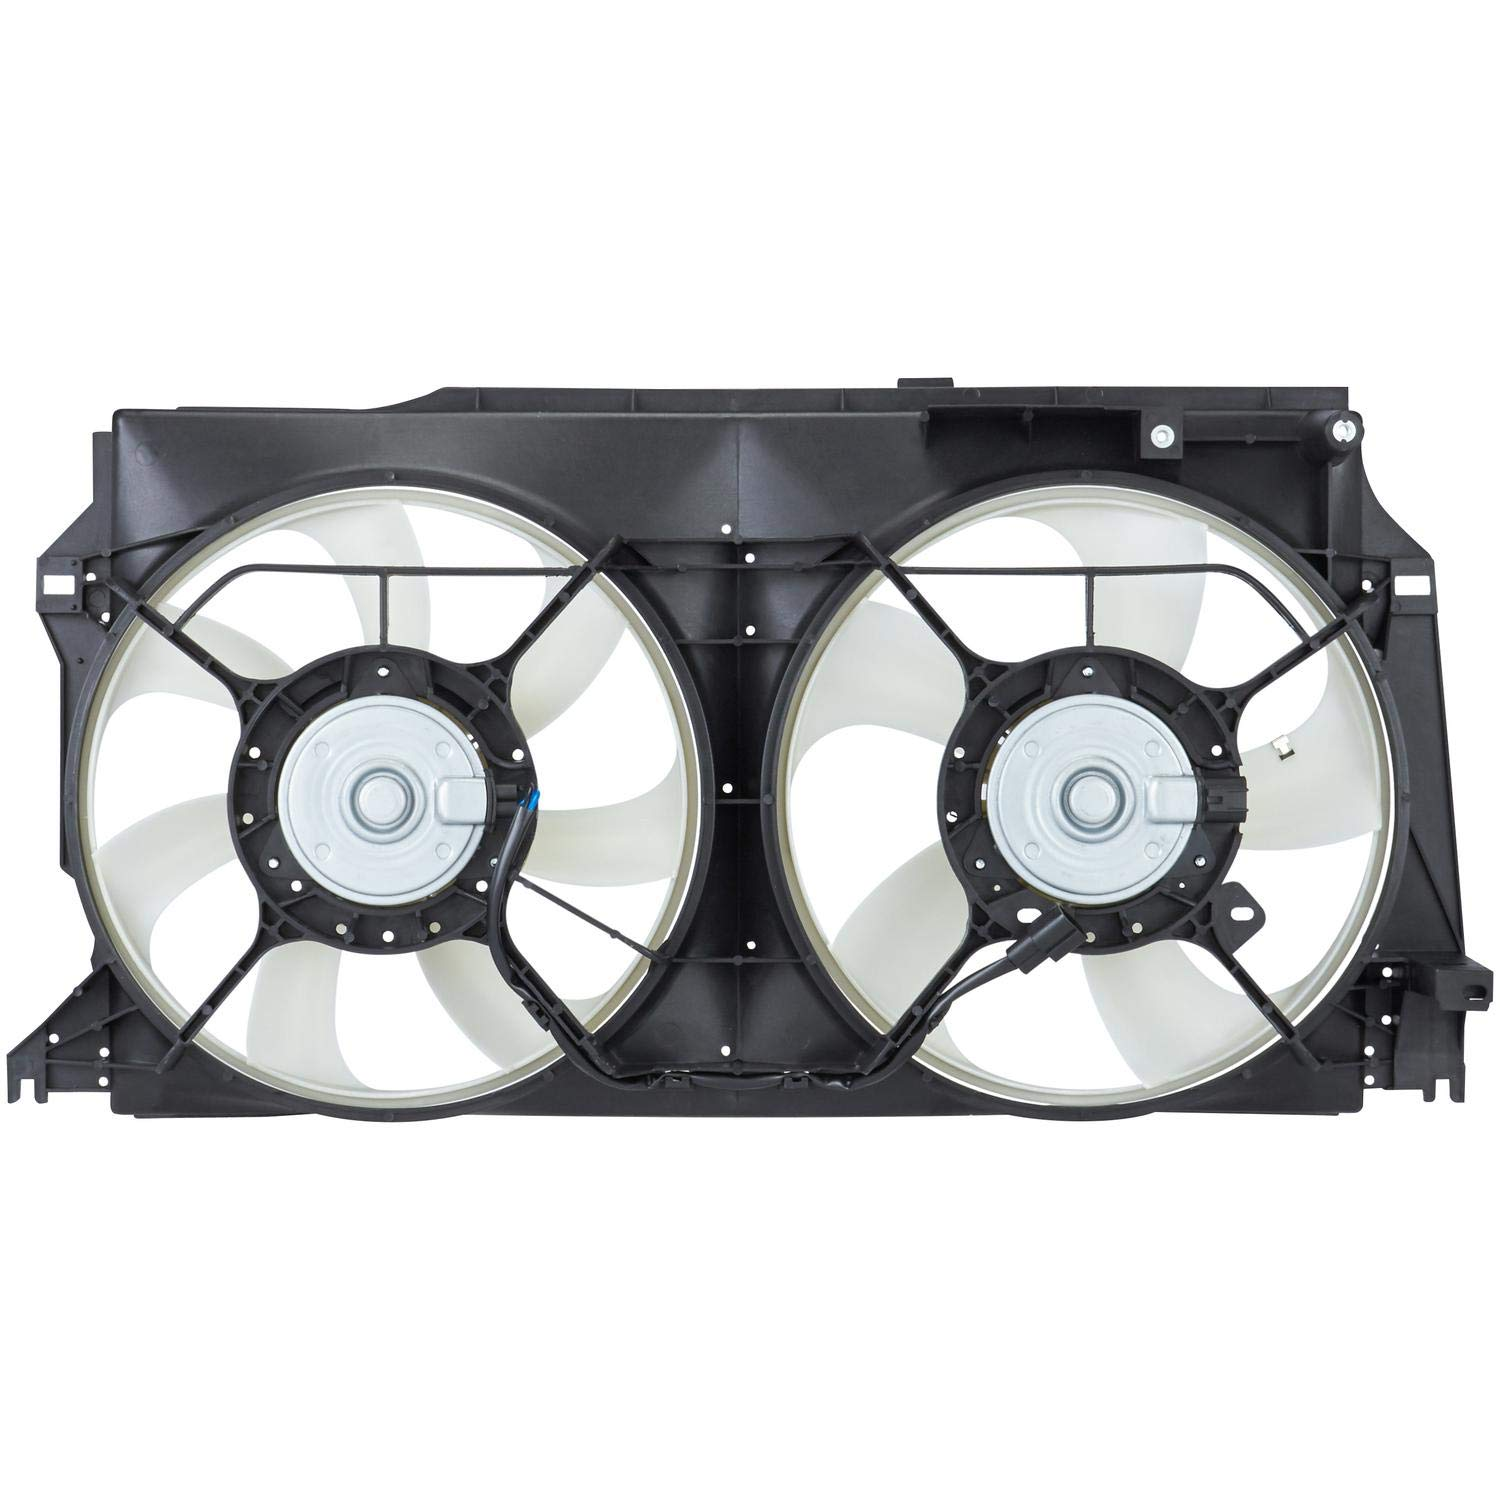 Spectra Premium CF20115 Dual Radiator And Condenser Fan Assembly